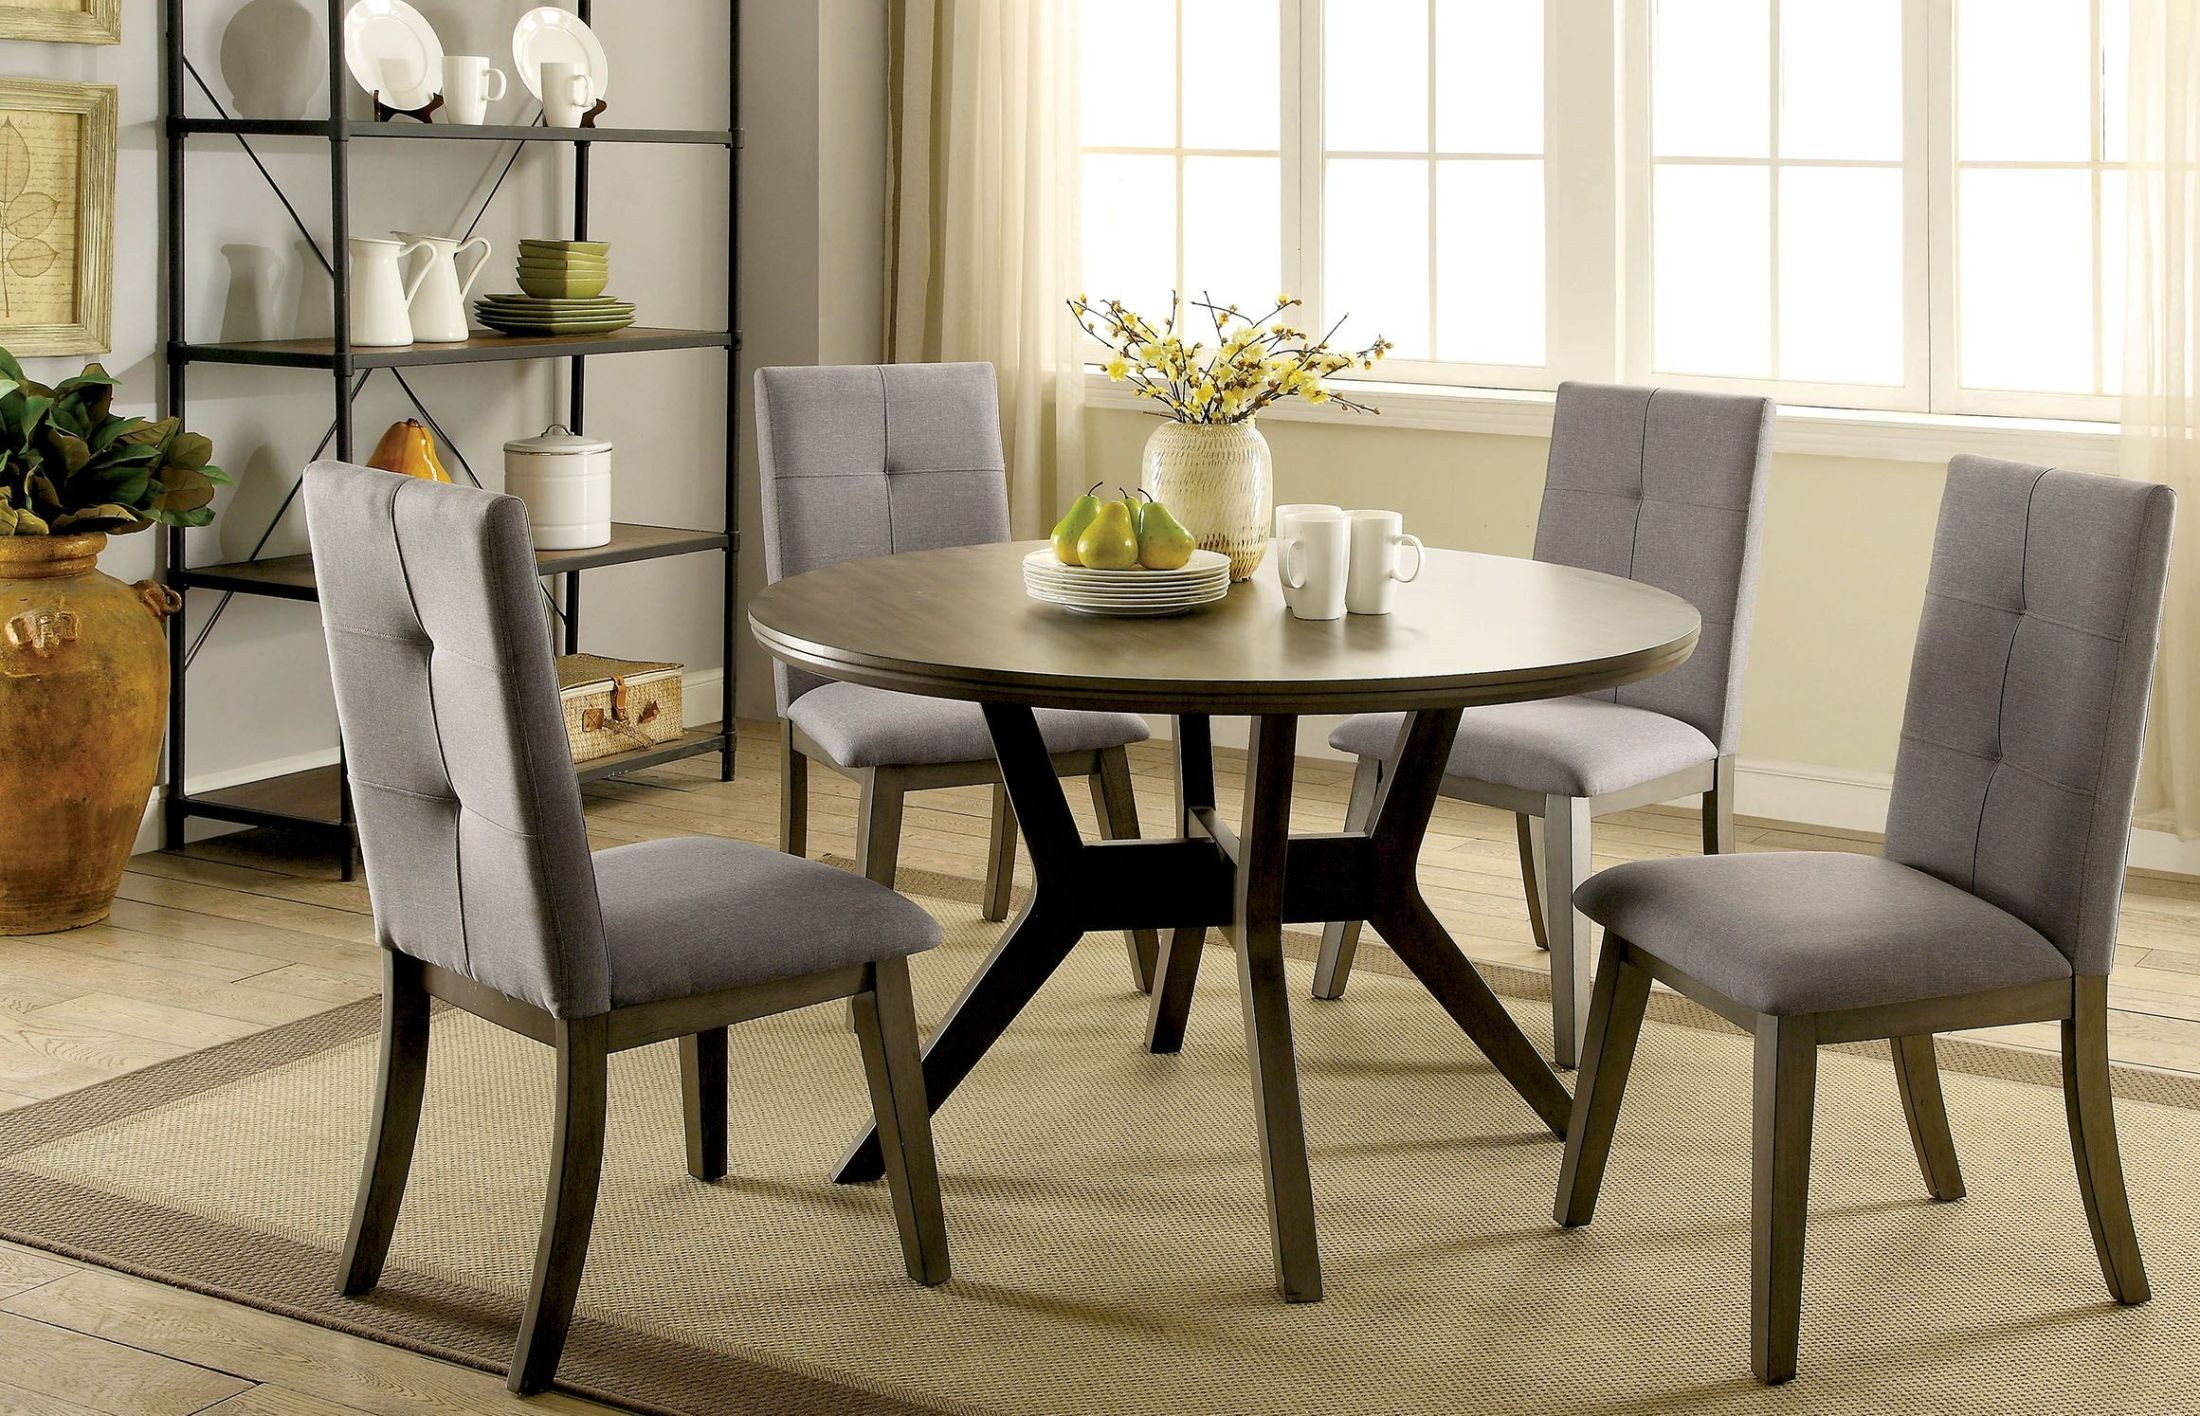 Grey Dining Room Table Sets: Abelone Gray Round Dining Room Set From Furniture Of